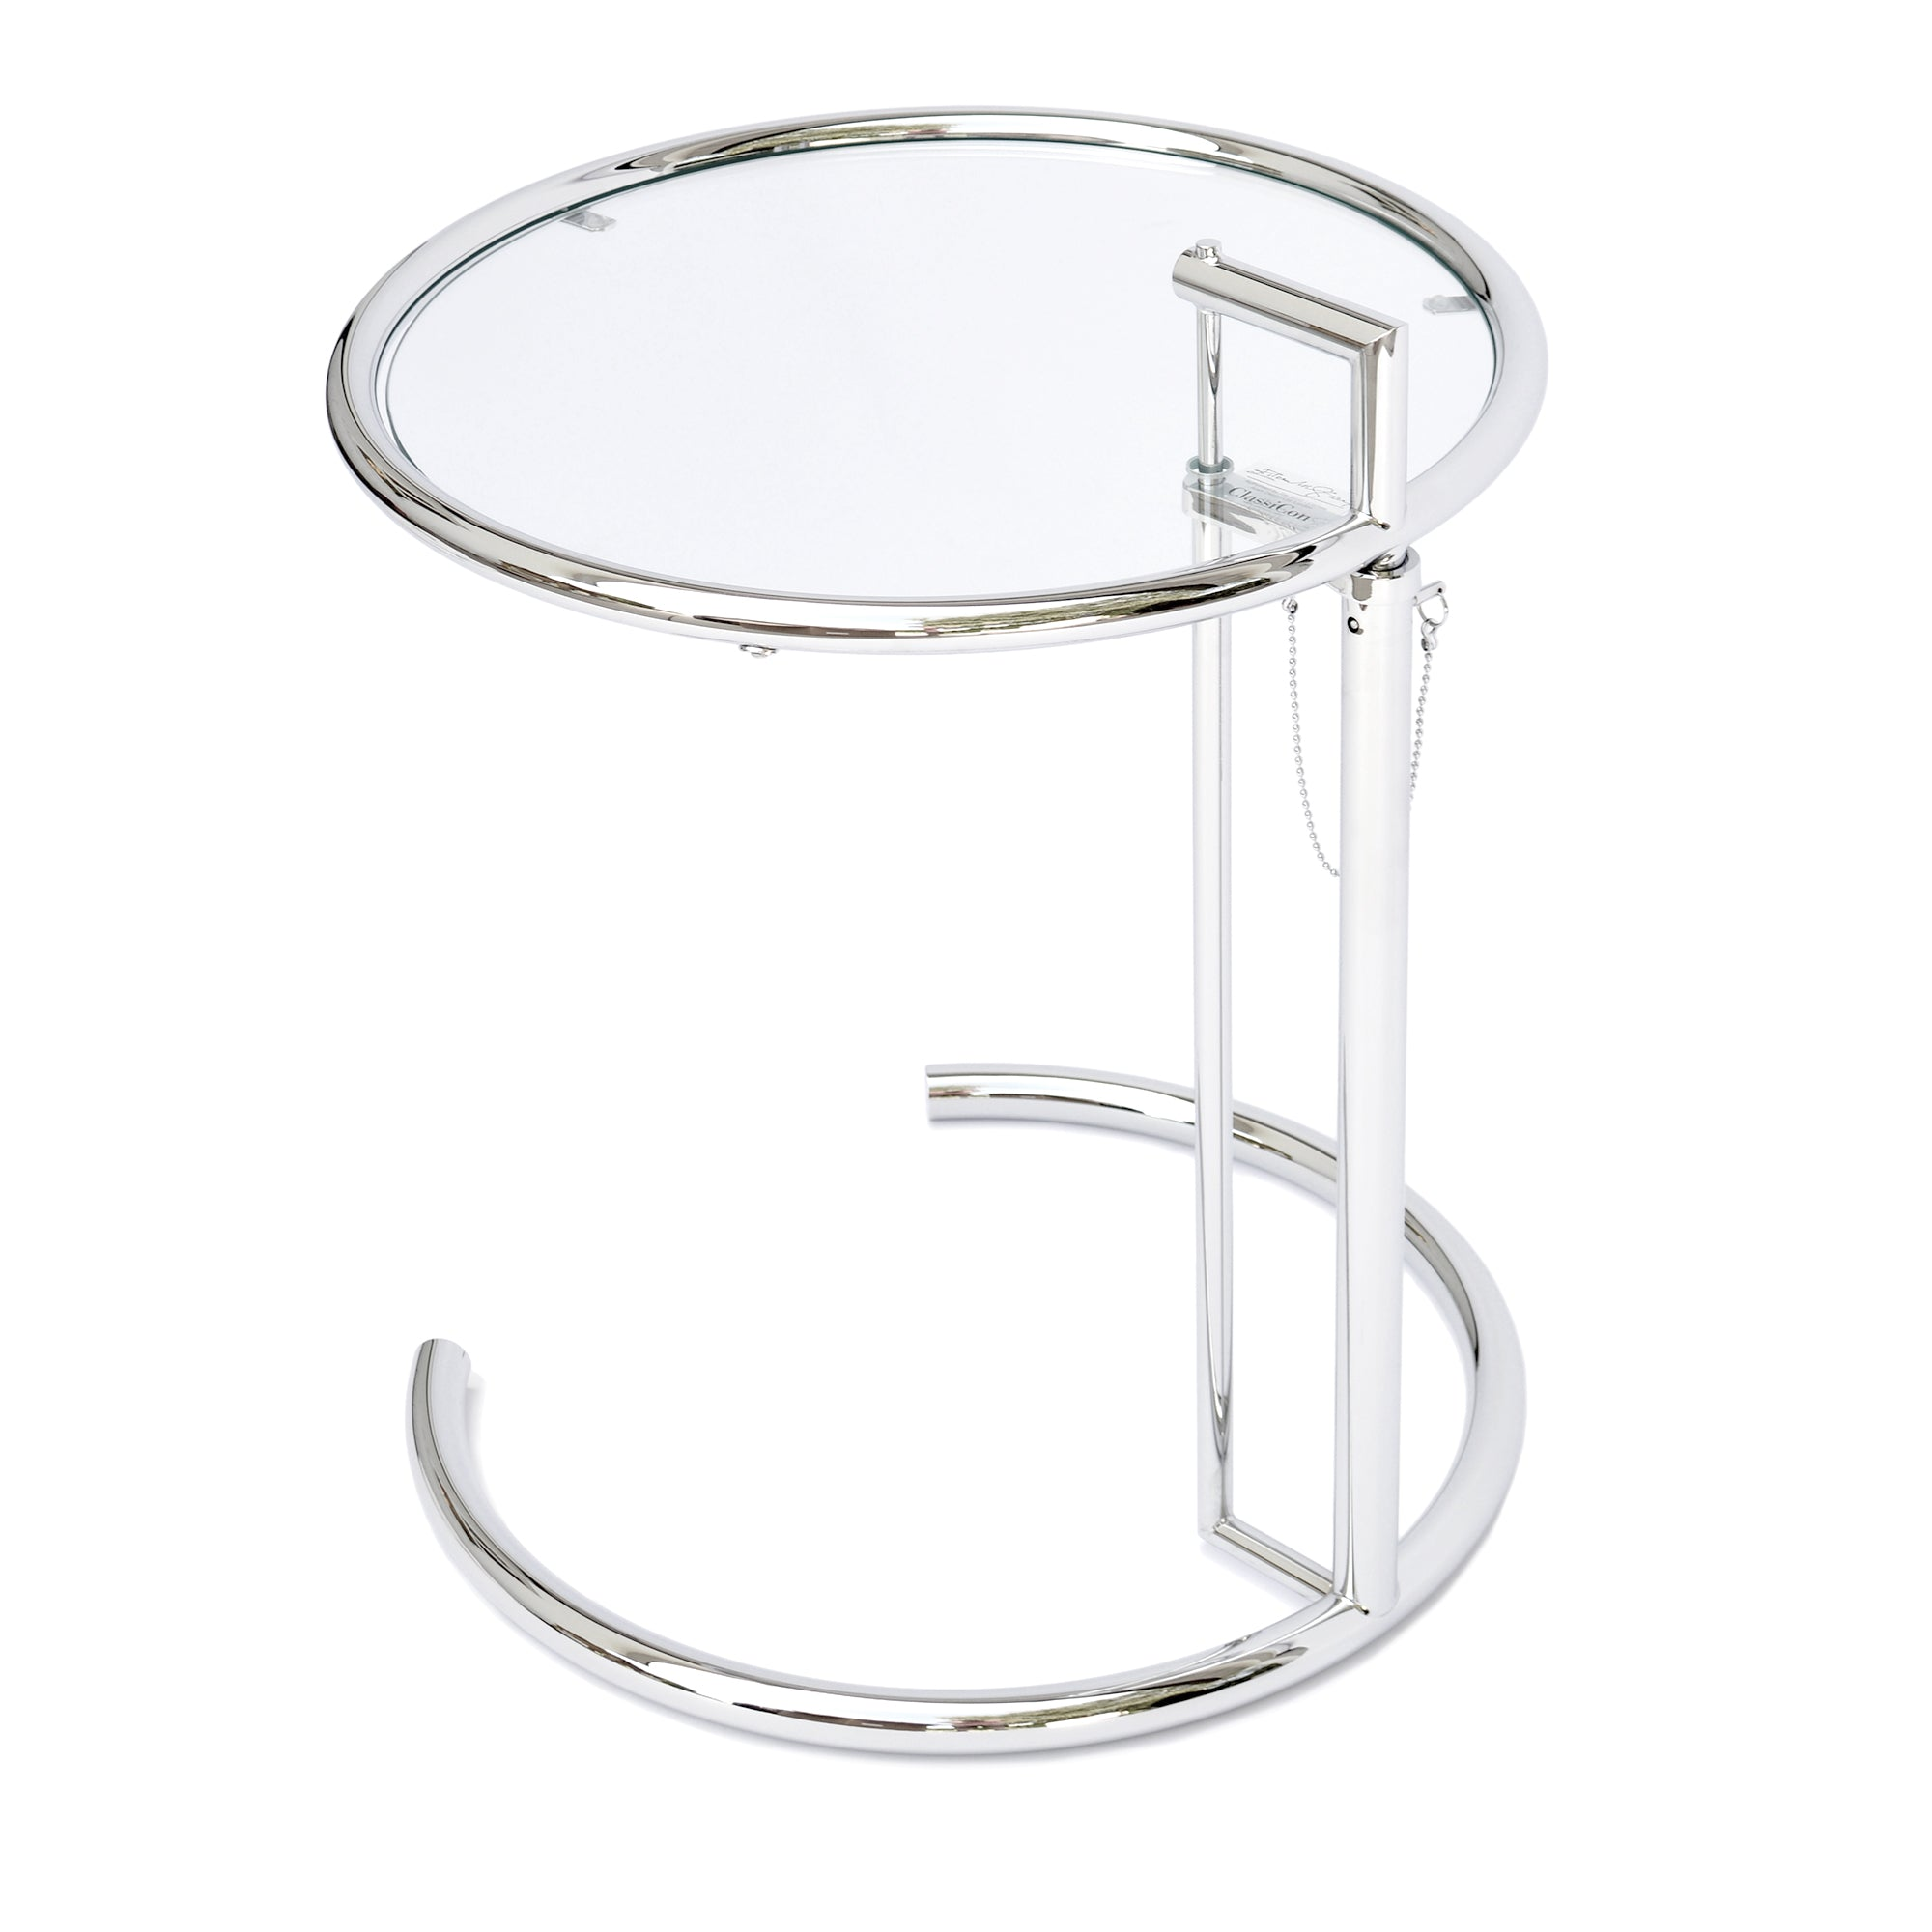 ClassiCon - E 1027 Adjustable Table, verchromt - Design Eileen Gray